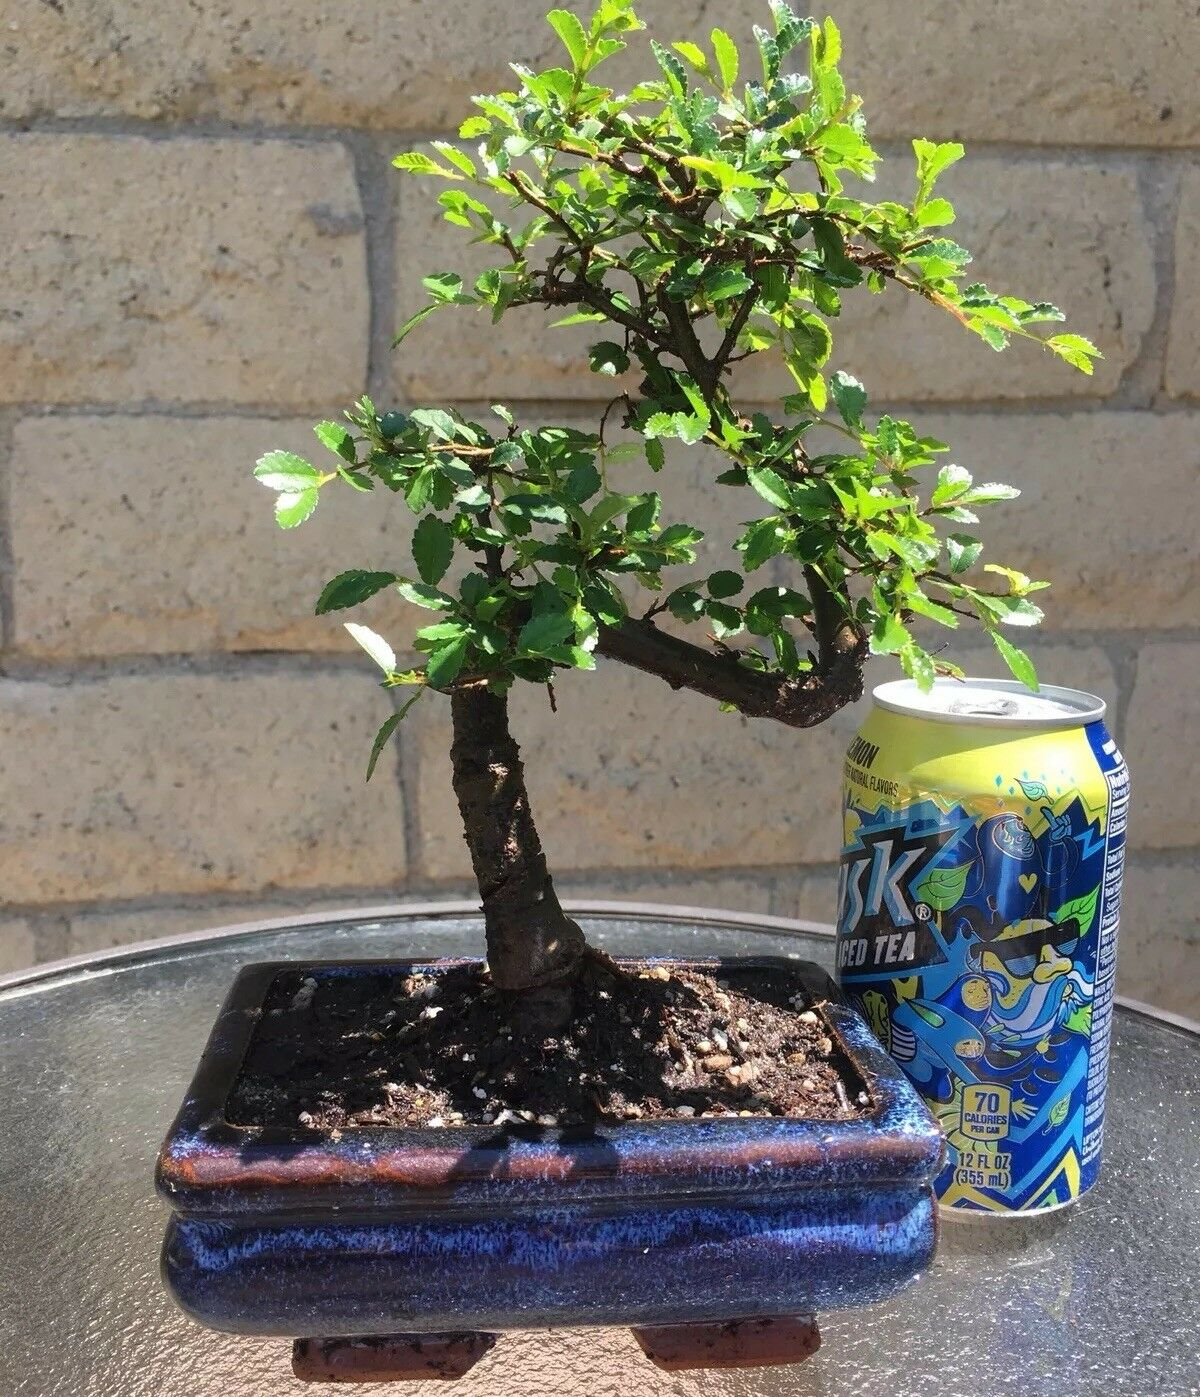 Chinese Elm Bonsai Outdoor Indoor Small Beginner Bonsai Tree Ce9005 For Sale Online Ebay